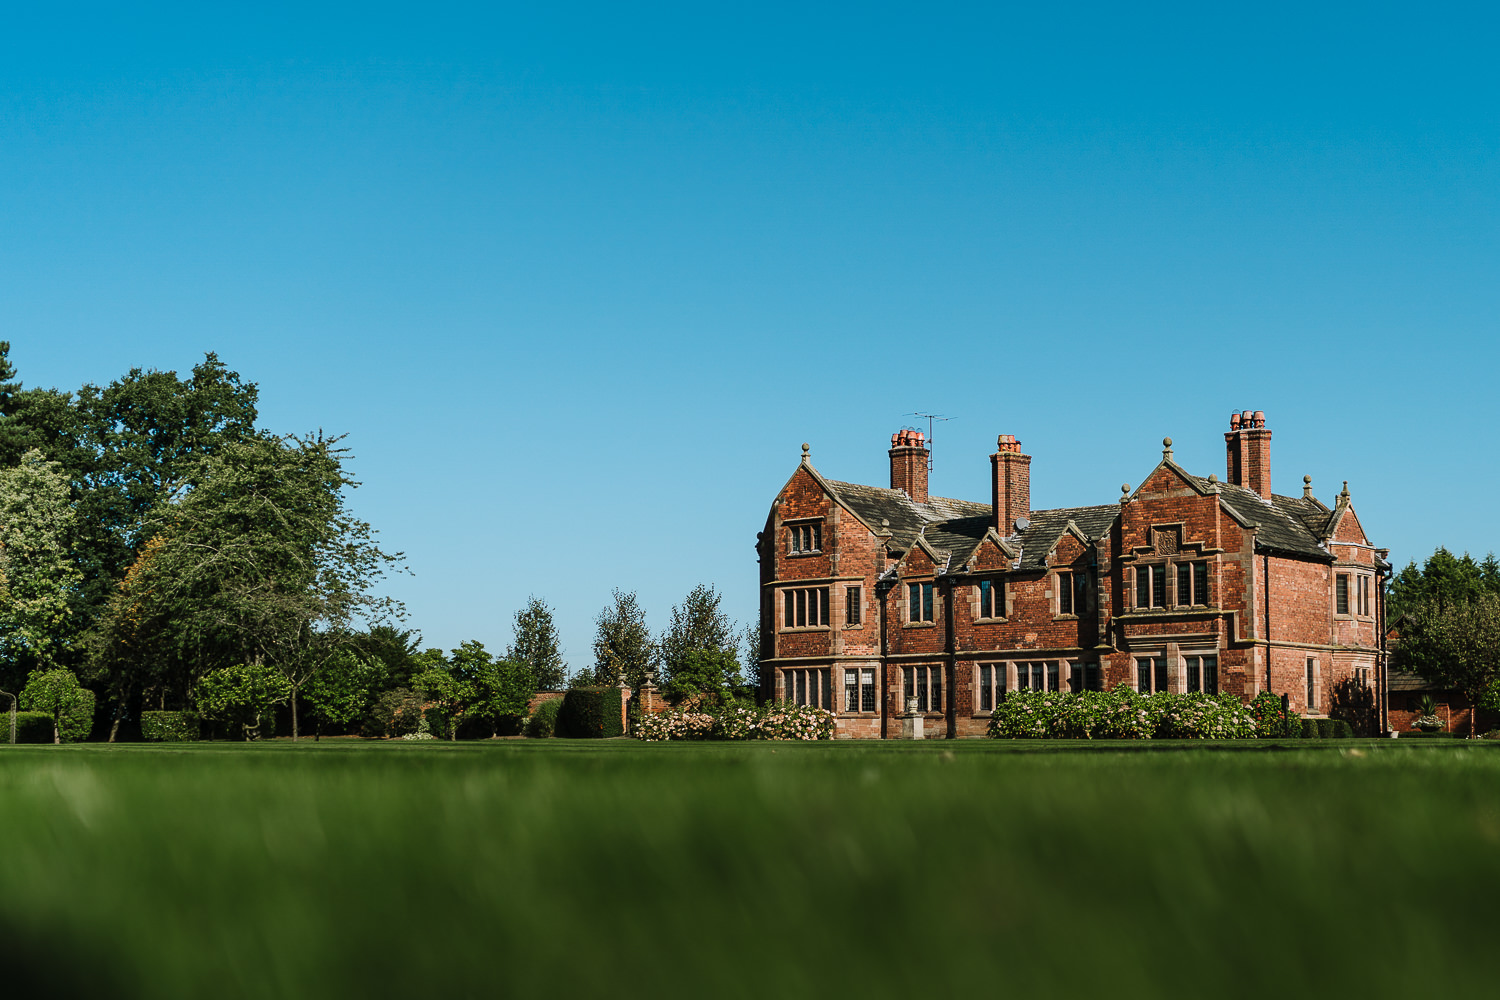 A photo of Colshaw Hall from the grounds